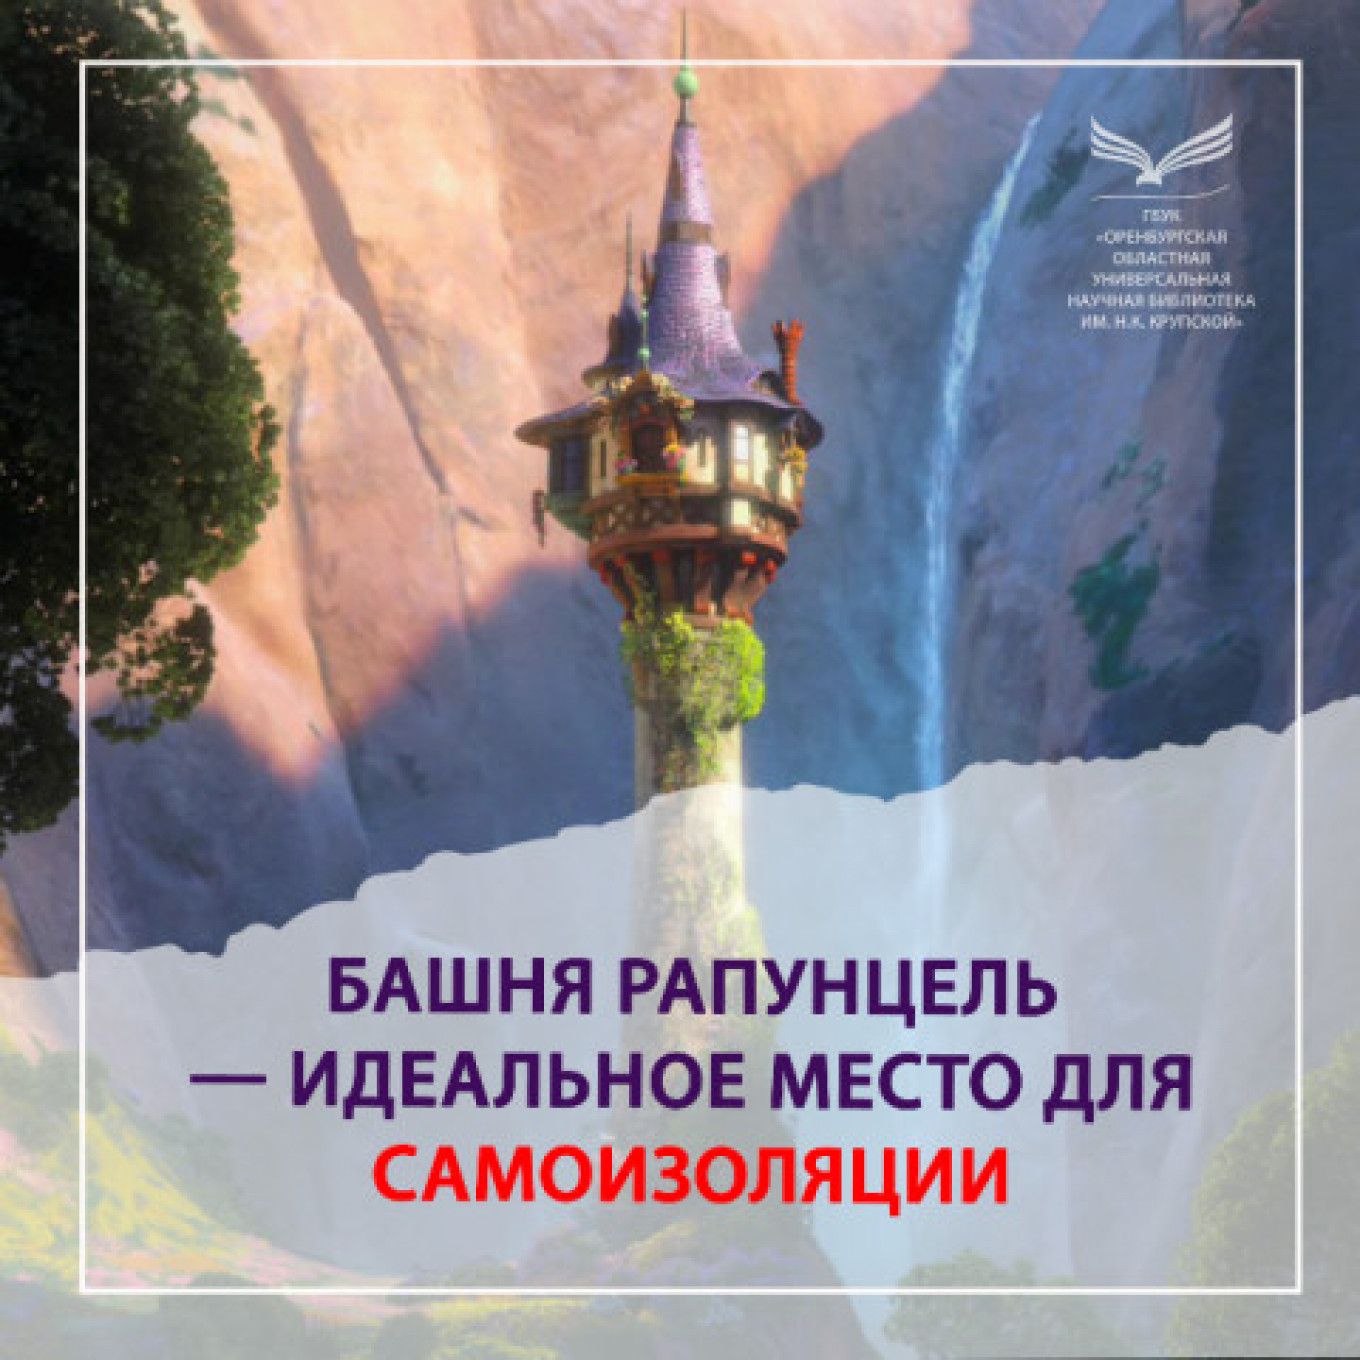 """Rapunzel's Tower is the perfect place for self-isolation""				 				Krupskaya Orenburg Regional Library"